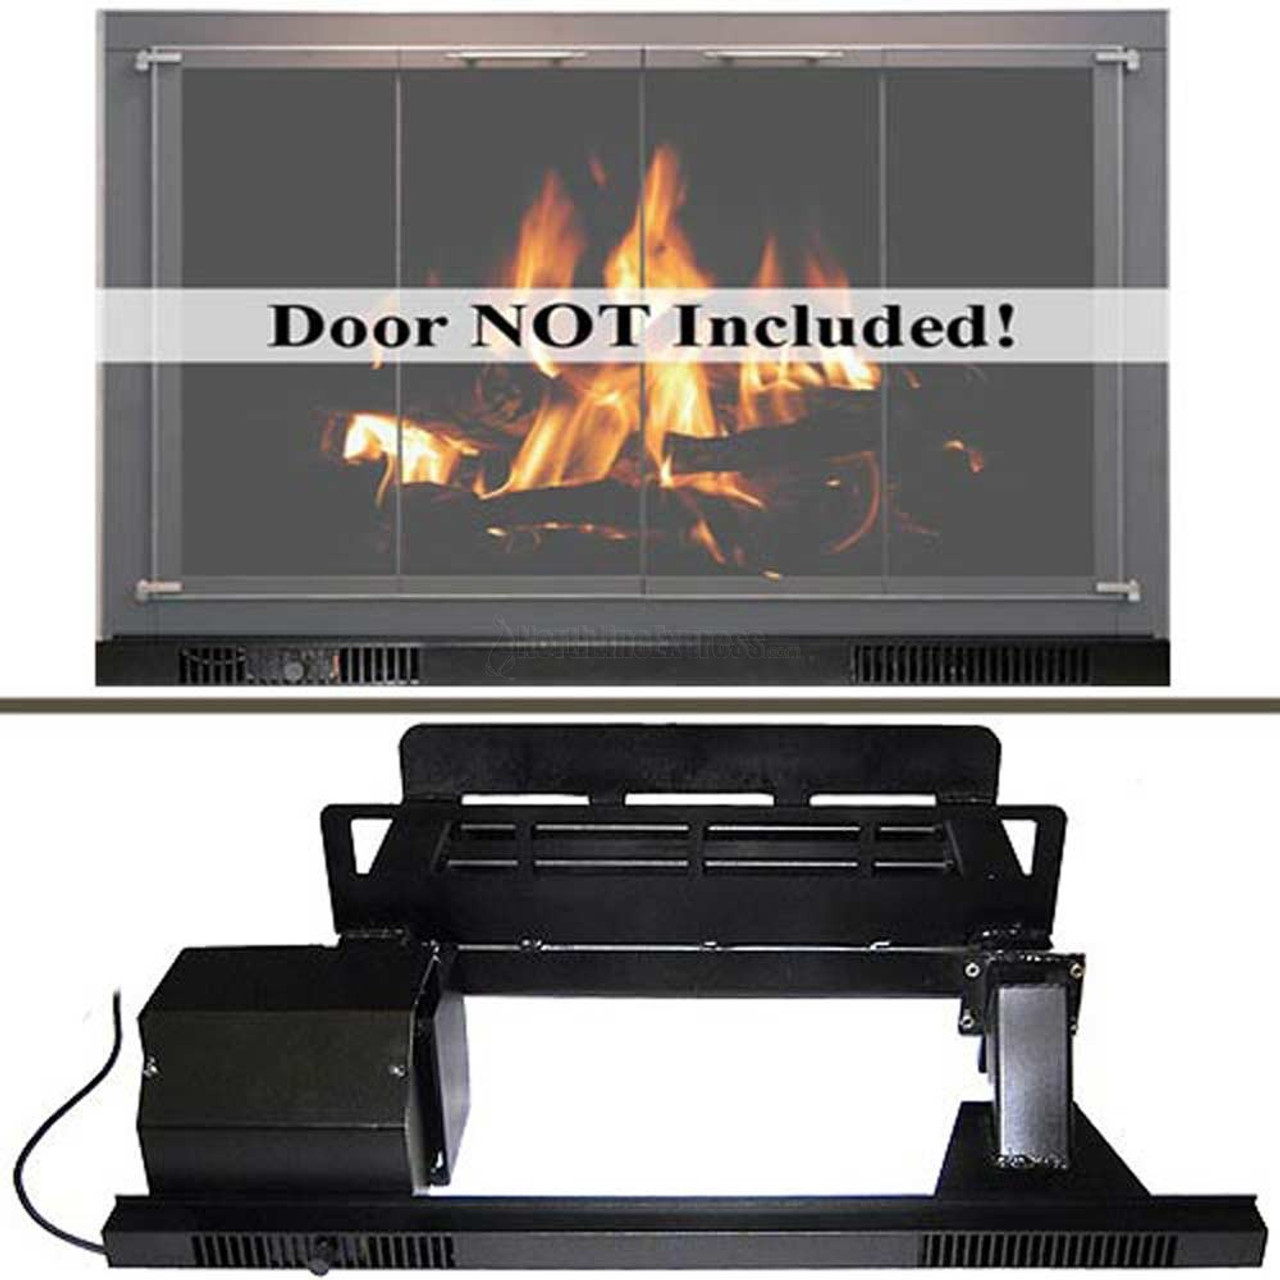 Fireplace Grate Blowers Wood Burning 22 X 20 Woodeze Wood Grate Heater With Blower